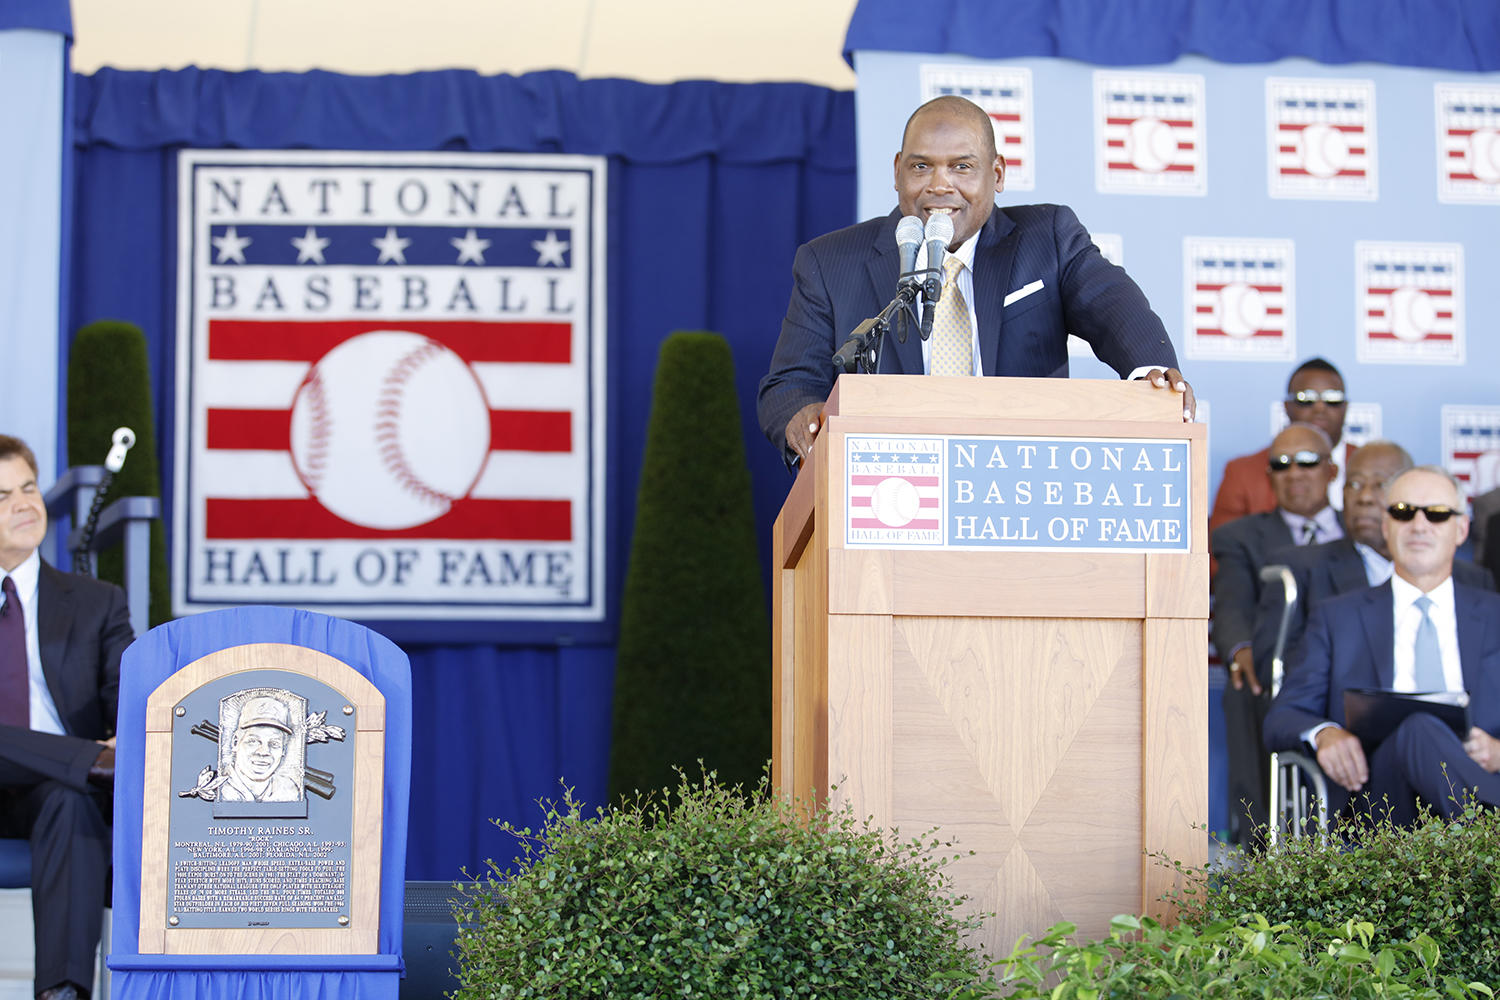 Tim Raines reflected on his career and family during Sunday's <em>Induction Ceremony</em>. (Milo Stewart Jr. / National Baseball Hall of Fame and Museum)